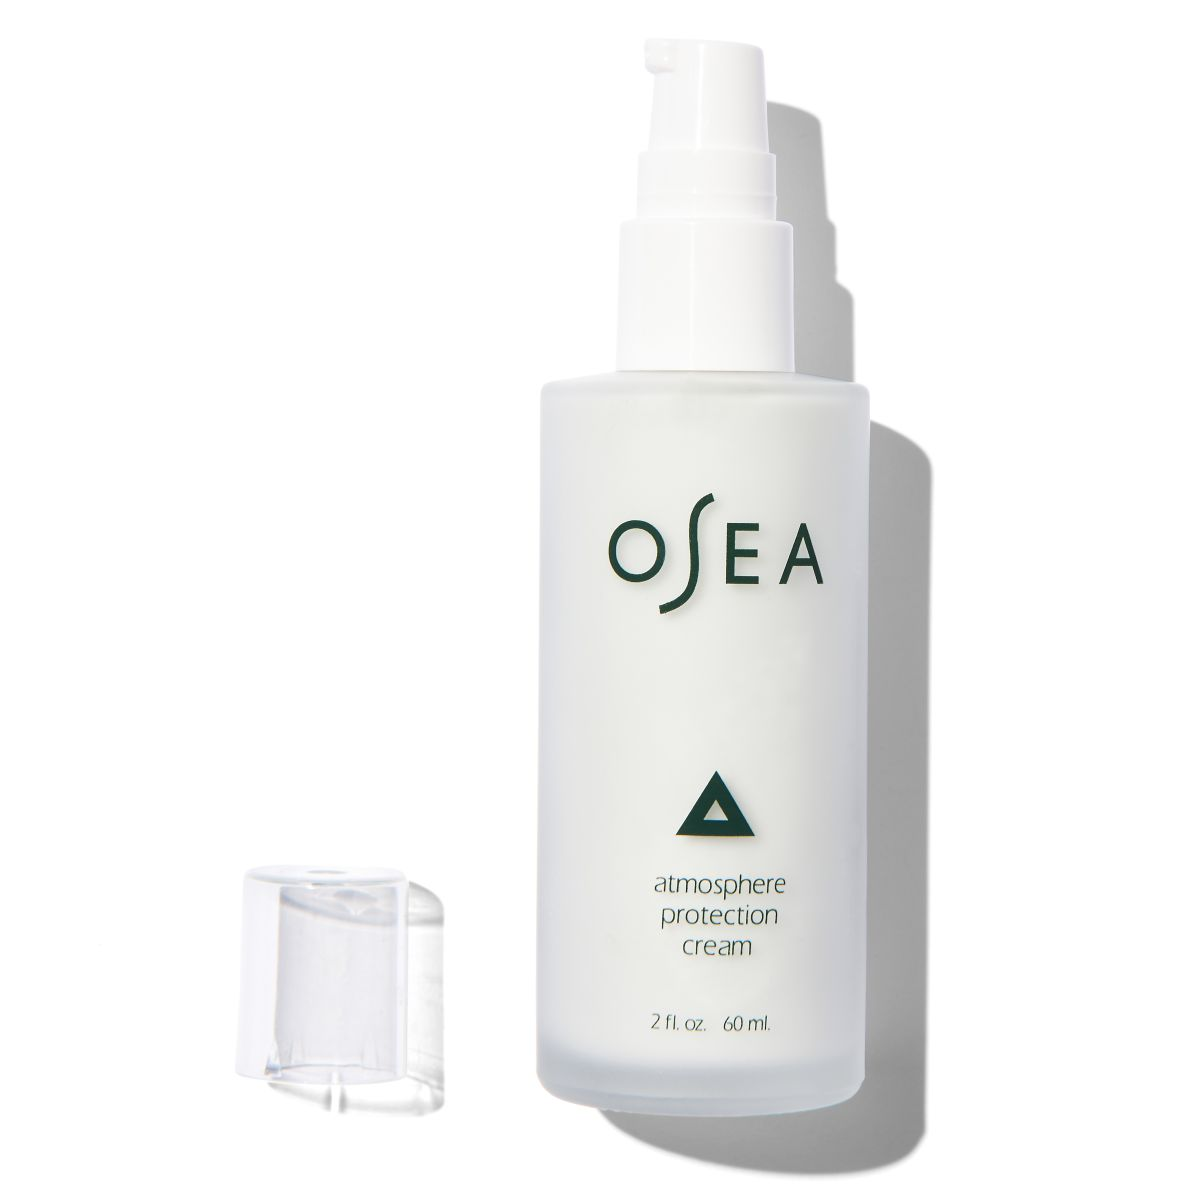 Image result for OSEA ATMOSPHERE PROTECTION CREAM